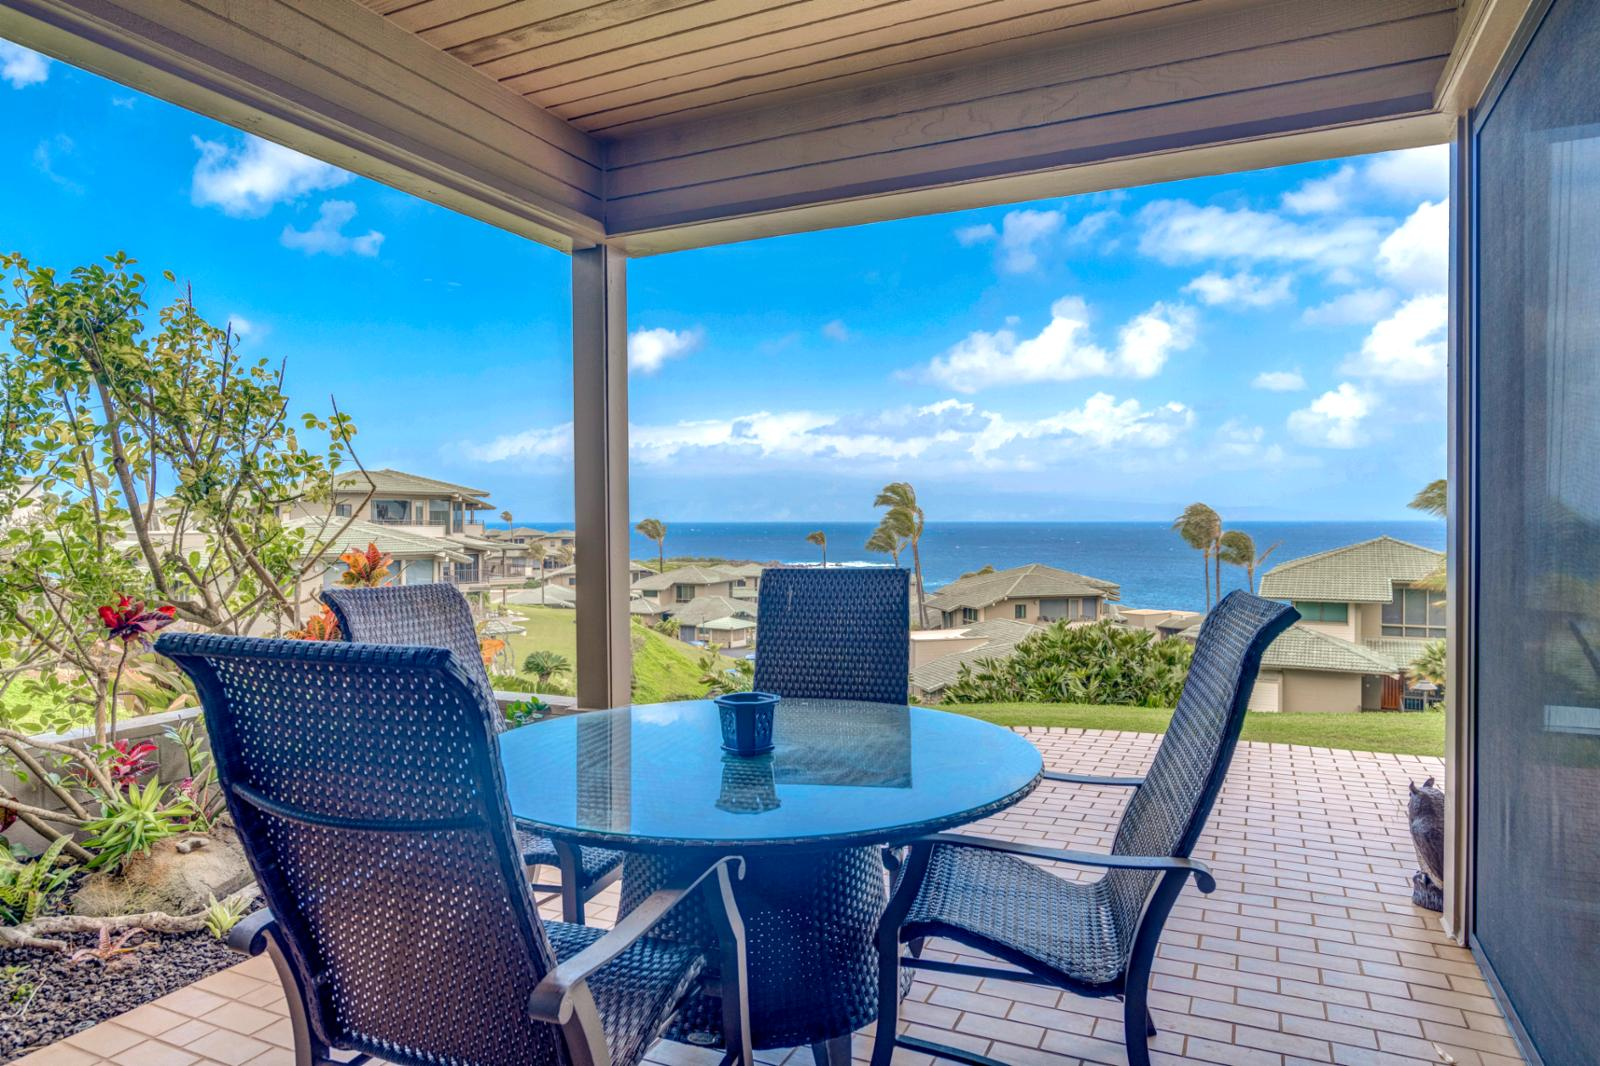 Welcome to Kapalua Bay Villa 14G4, your dream luxury villa awaits!